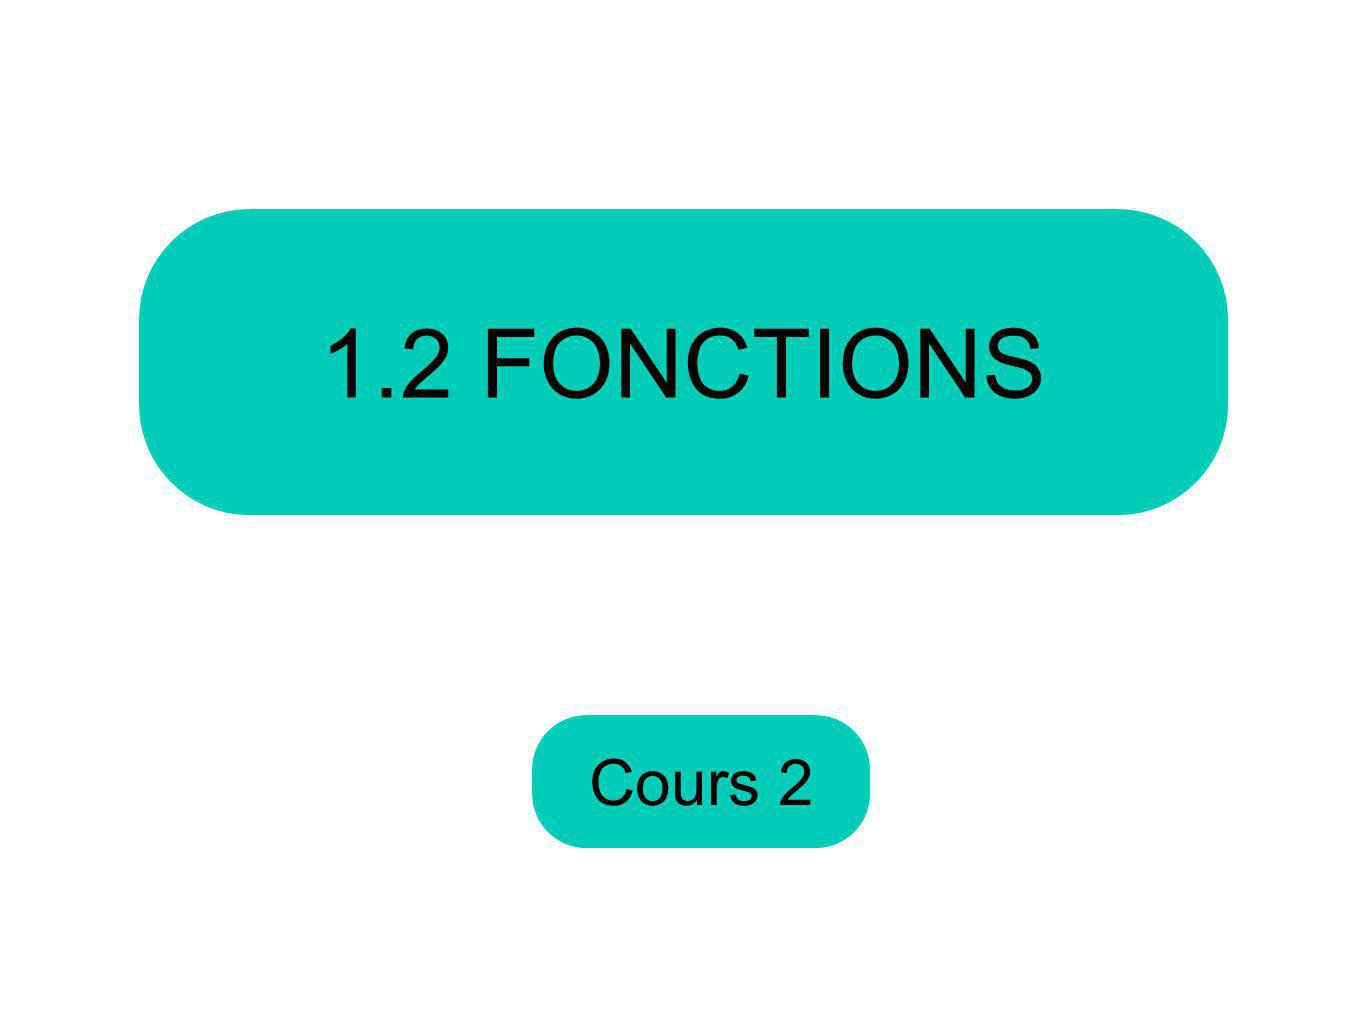 1.2 FONCTIONS Cours 2